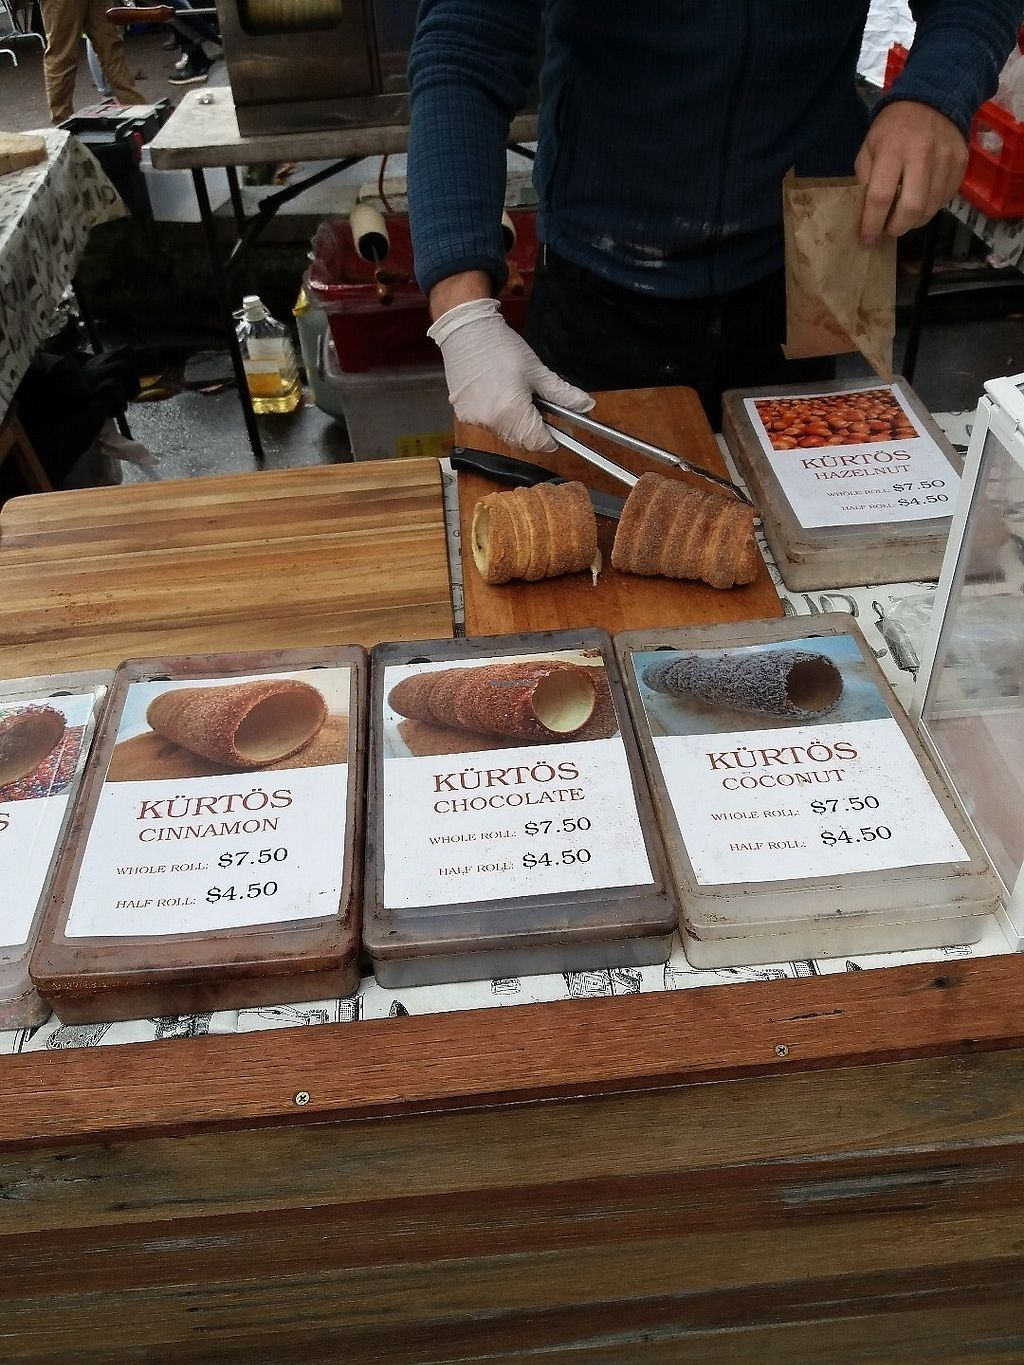 "Photo of Gabor's Kurtos - Market Stall  by <a href=""/members/profile/veganvirtues"">veganvirtues</a> <br/>Some of the vegan sweet rolls <br/> June 11, 2017  - <a href='/contact/abuse/image/93807/267887'>Report</a>"